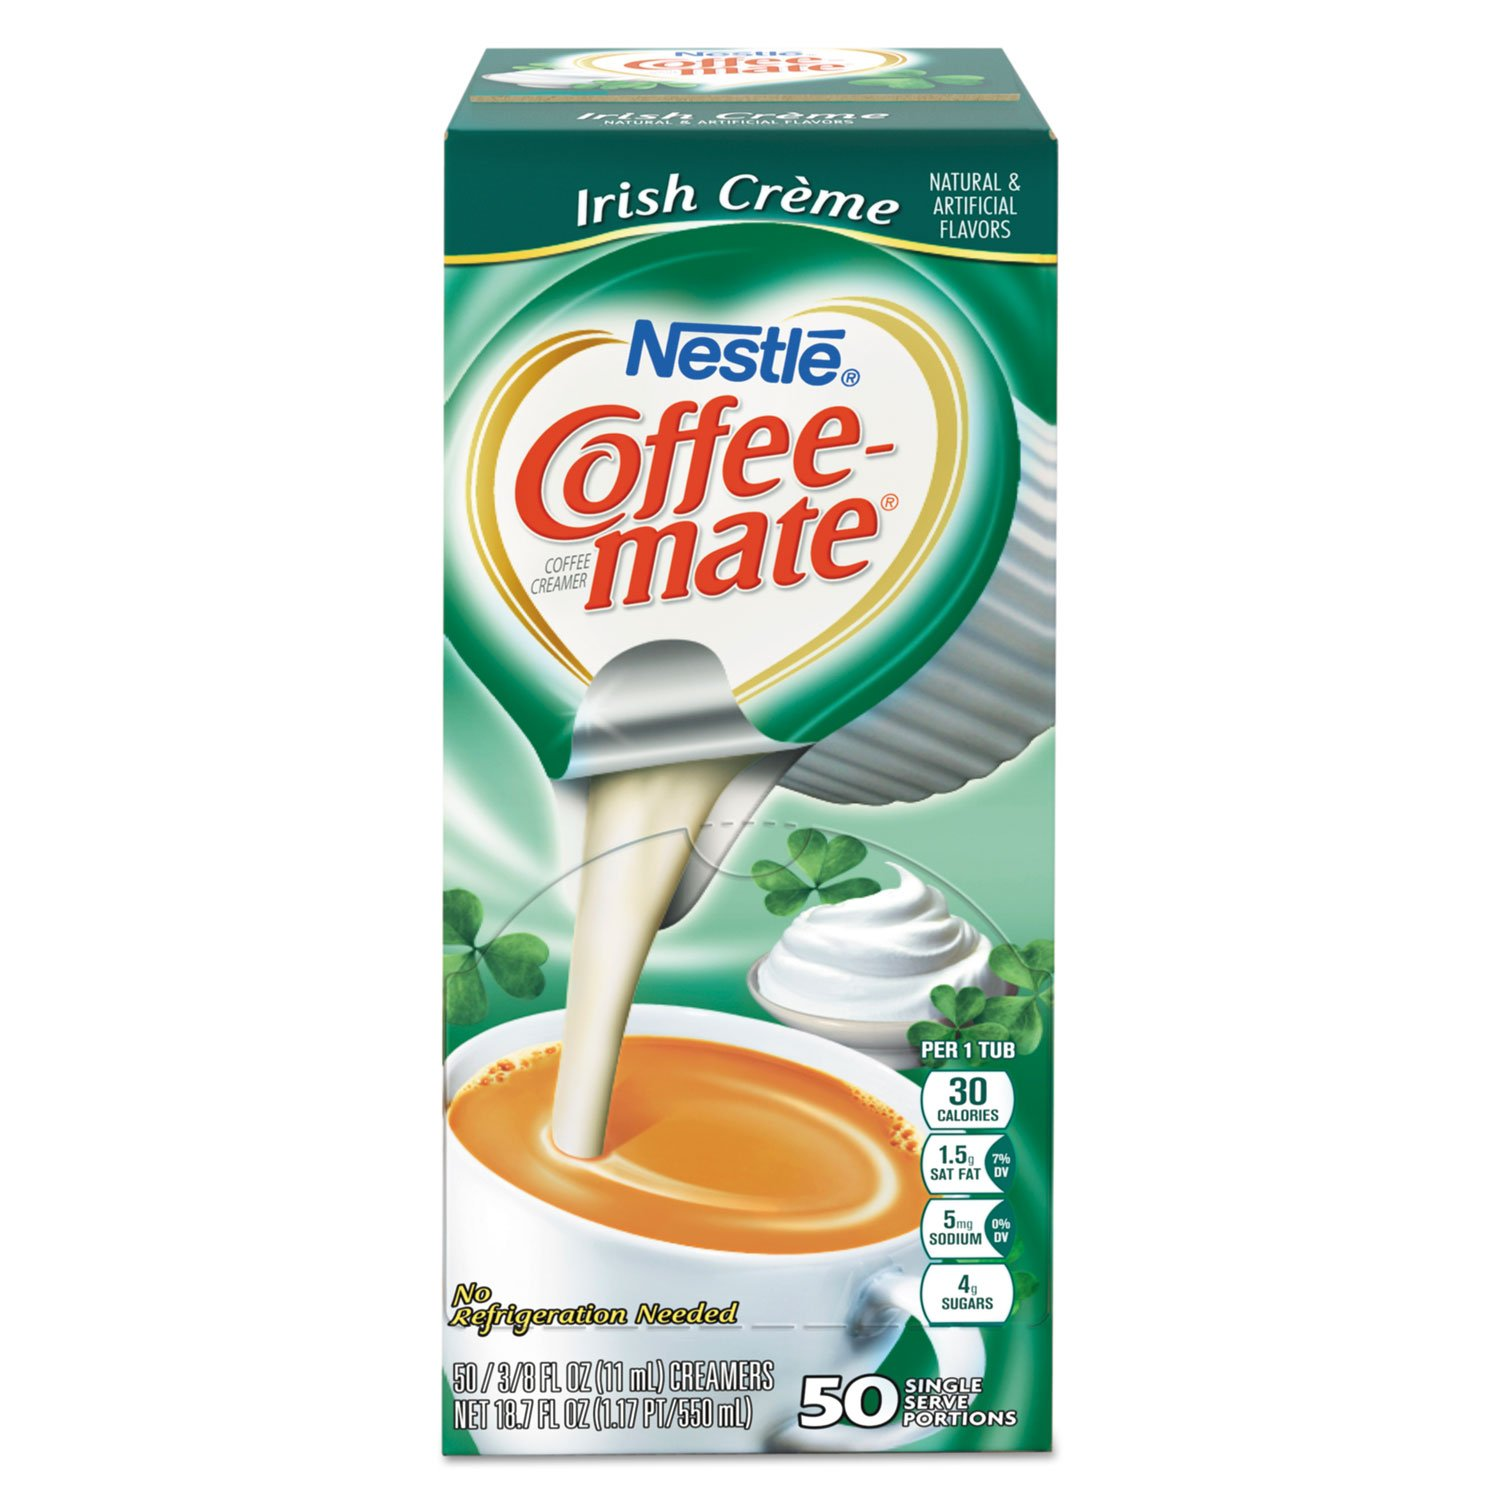 Coffee-mate 35112CT Liquid Coffee Creamer, Irish Creme, 0.375 oz Mini Cups, 50/Box, 4 Box/Carton